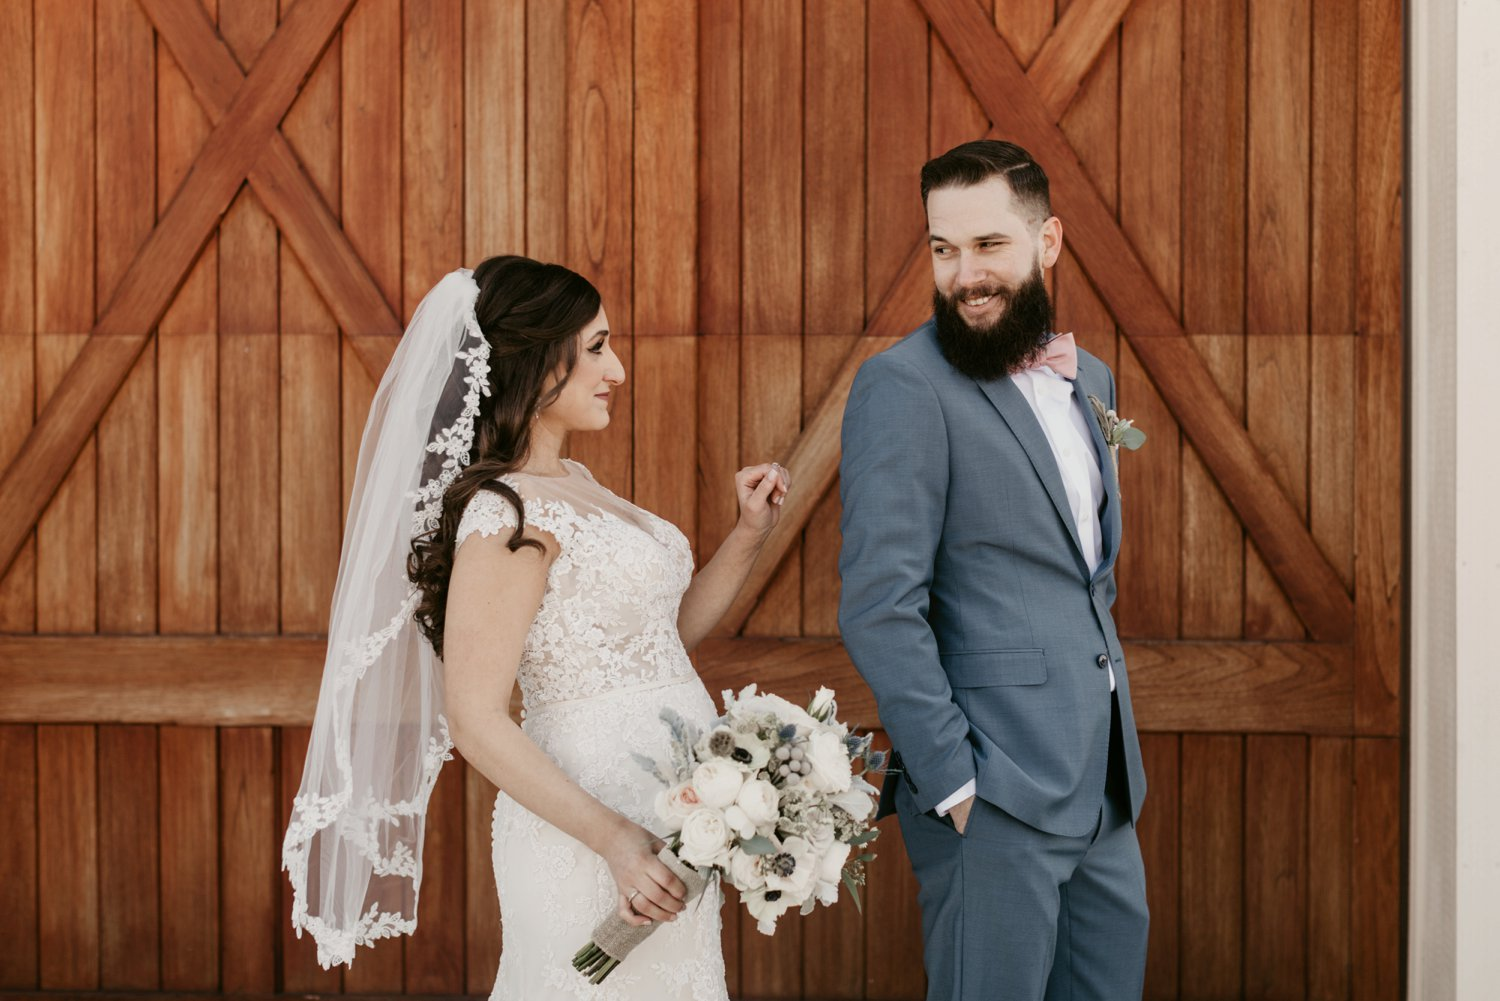 Thousand Acre Farms wedding Delaware wedding photographer | bride and groom first look portraits